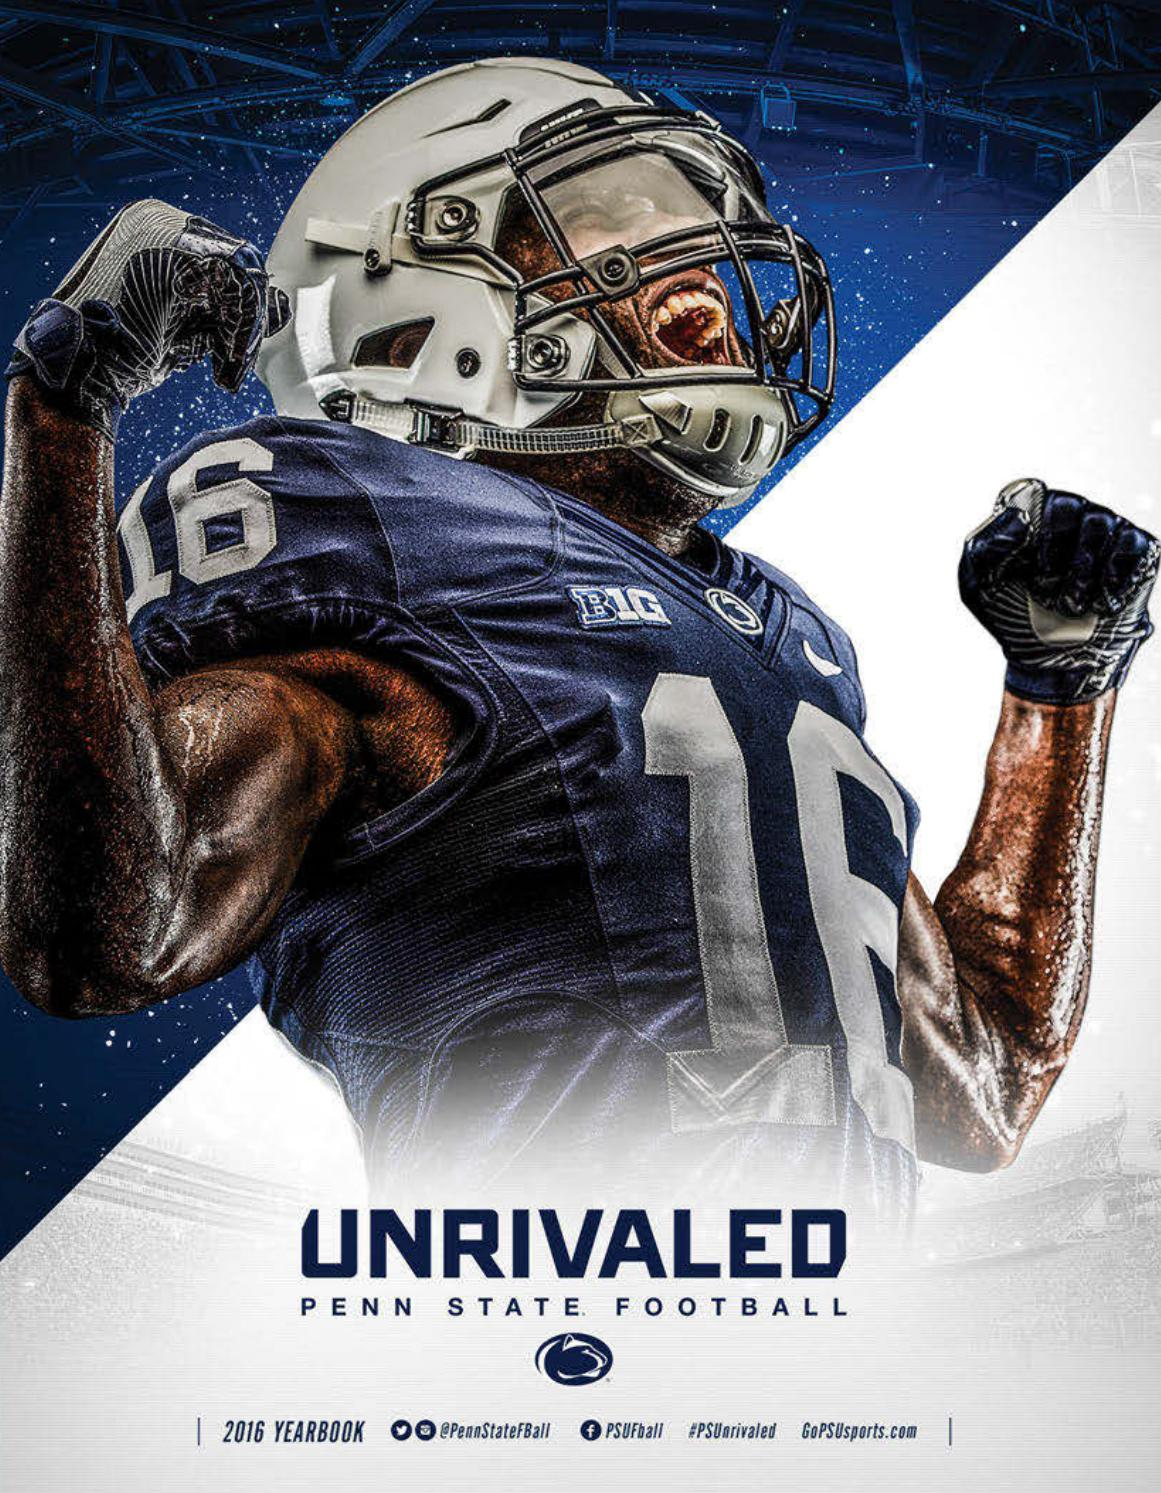 NFL Jerseys Nike - 2016 Penn State Football Yearbook by Penn State Athletics - issuu